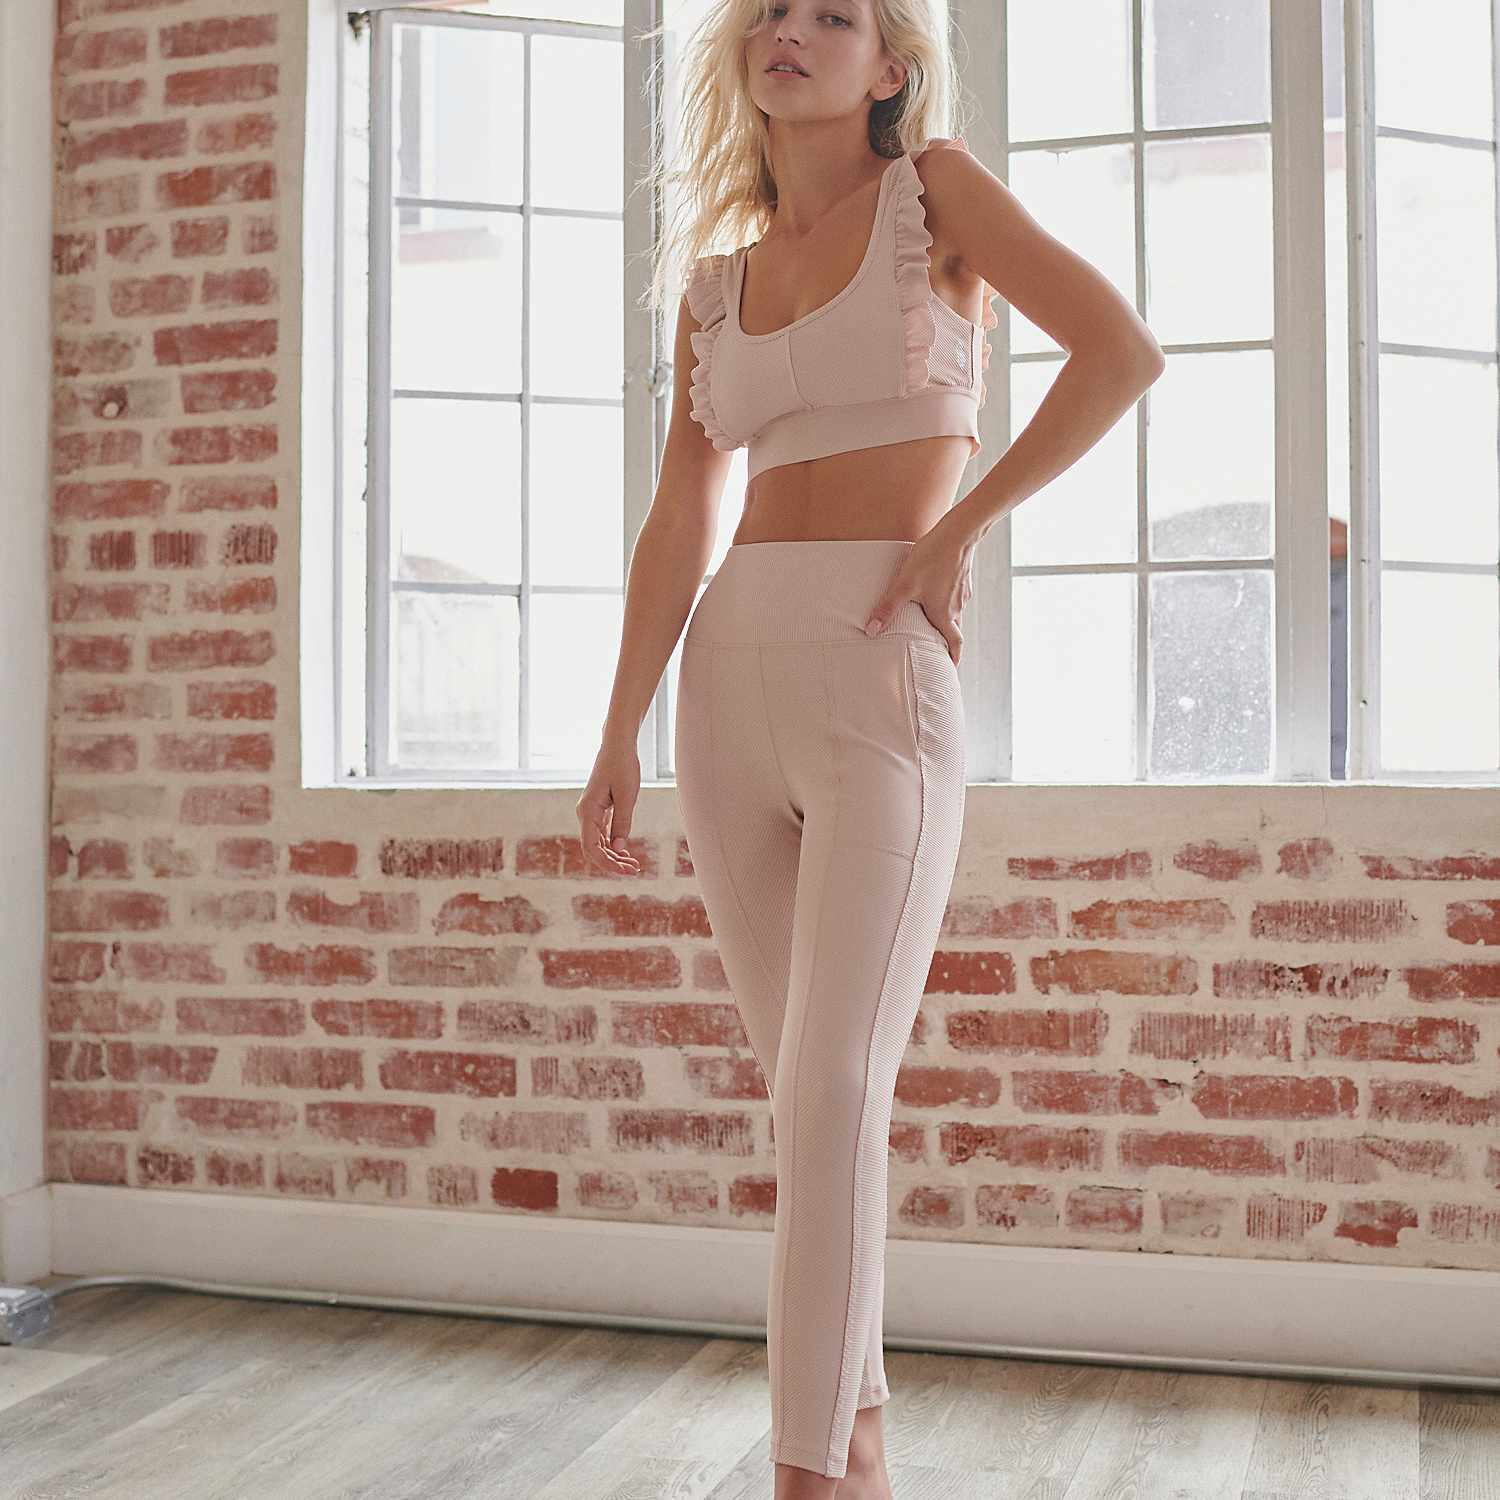 ruffle workout outfit